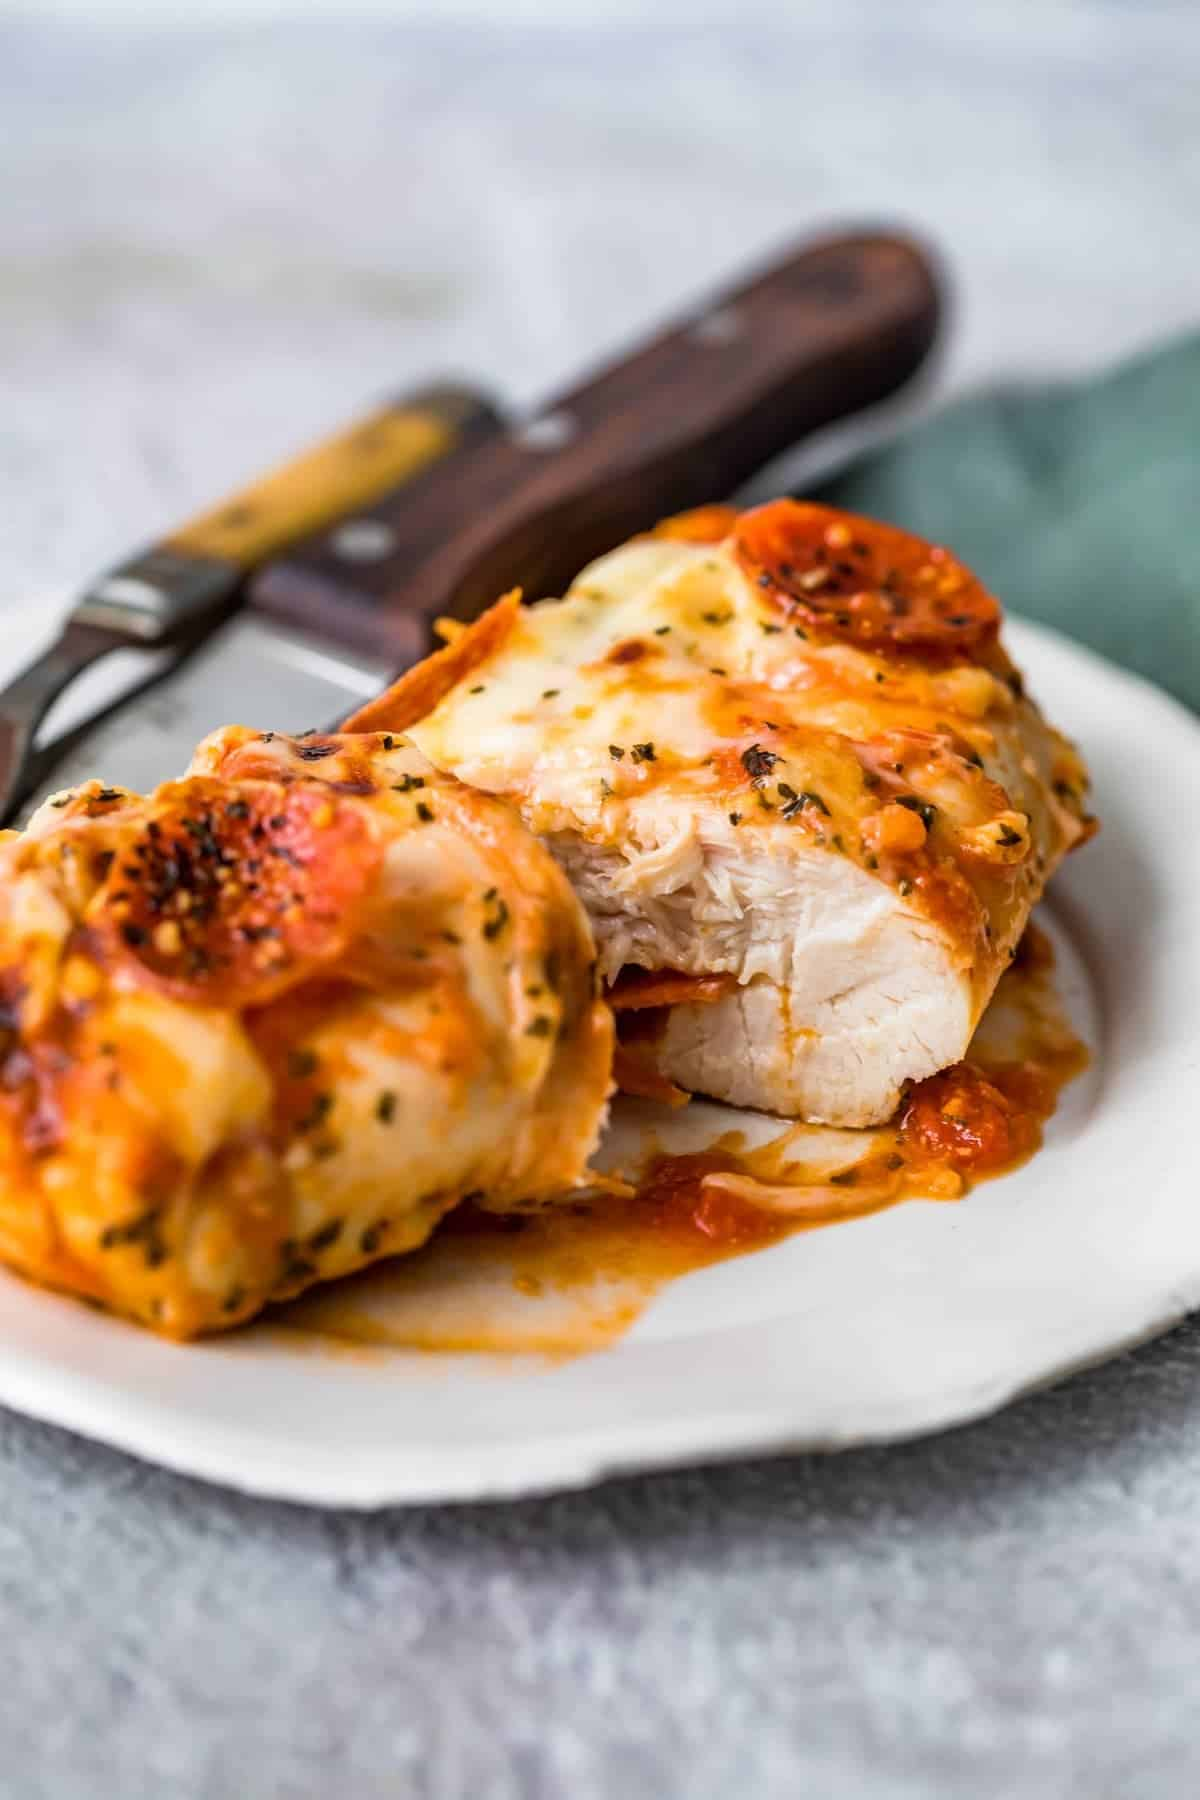 A Pizza Chicken Baked breast served on a white plate and cut in half